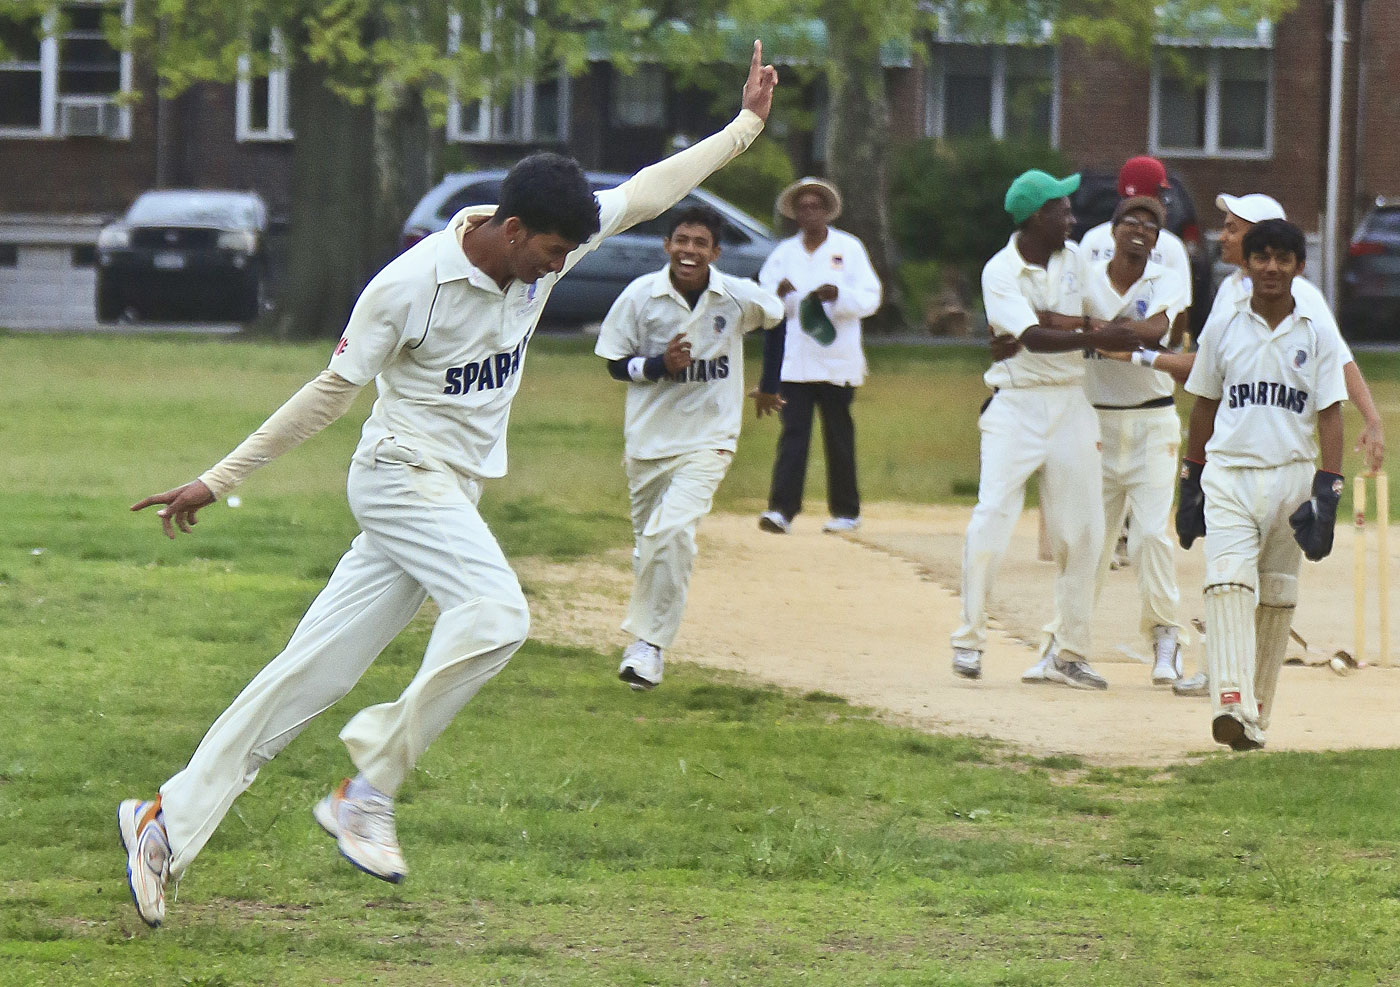 The New York Public Schools Athletic League is one of the most popular cricket leagues in the country